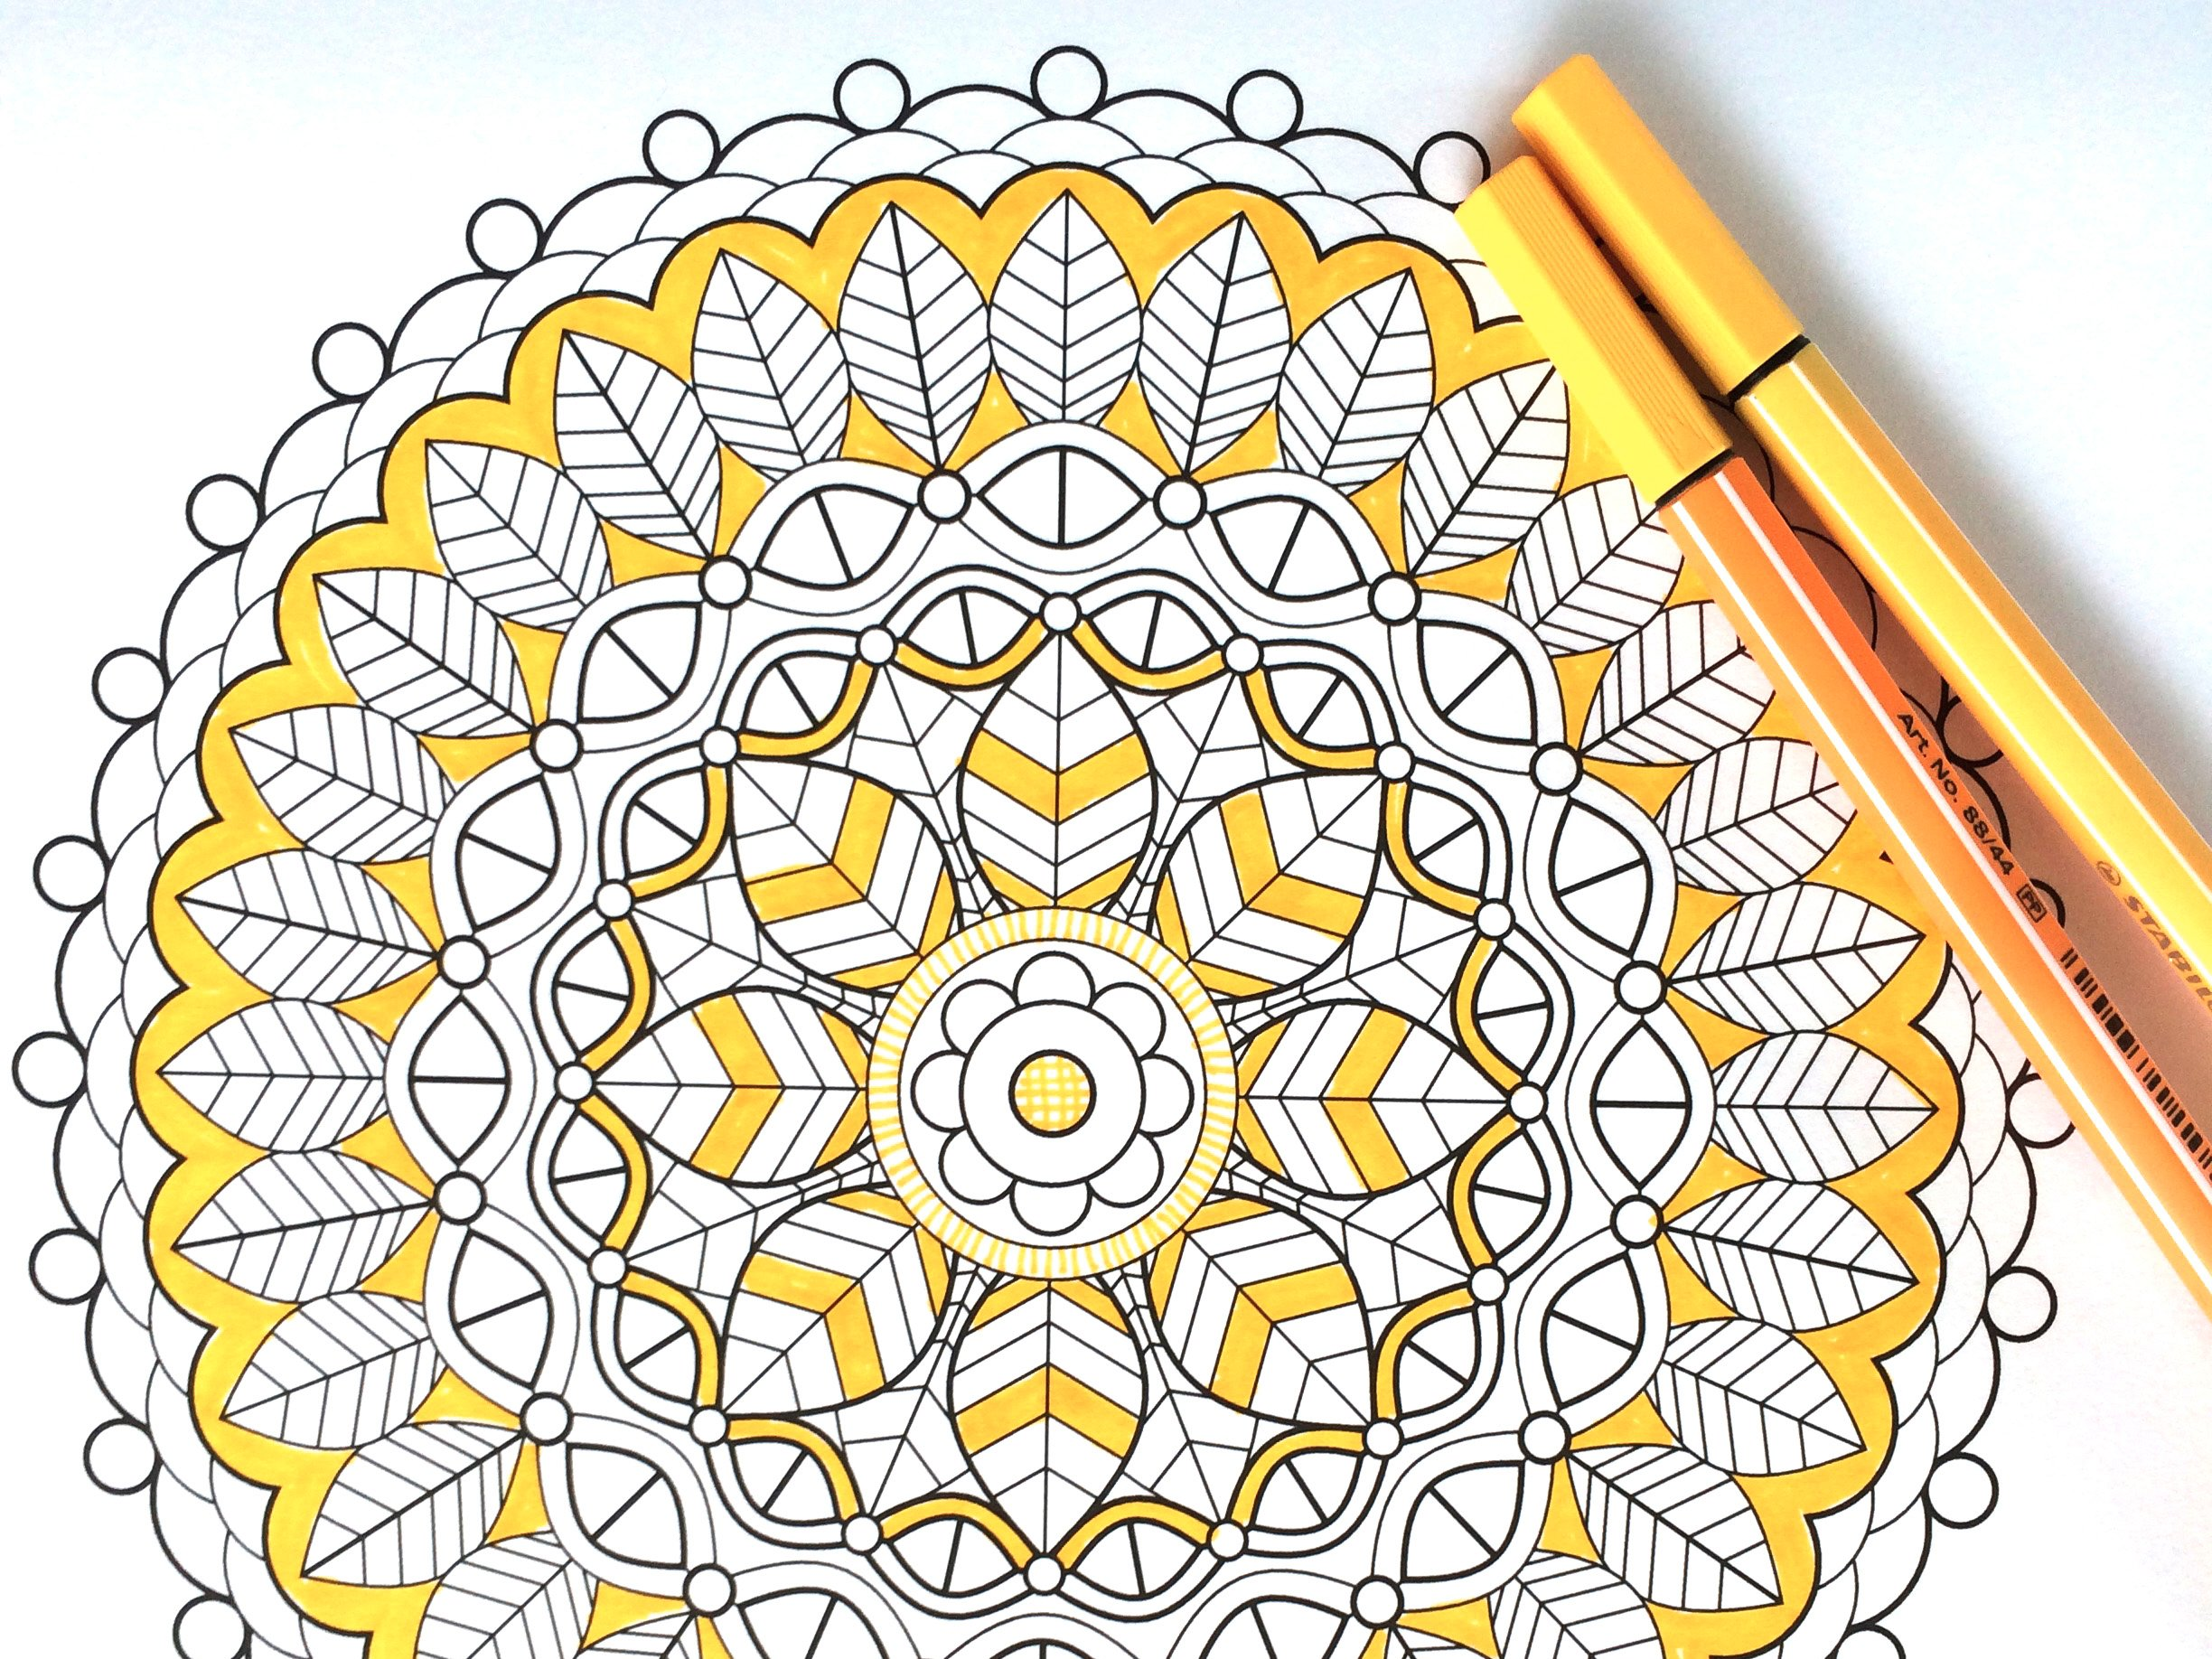 adult-coloring - Bristol Public Library